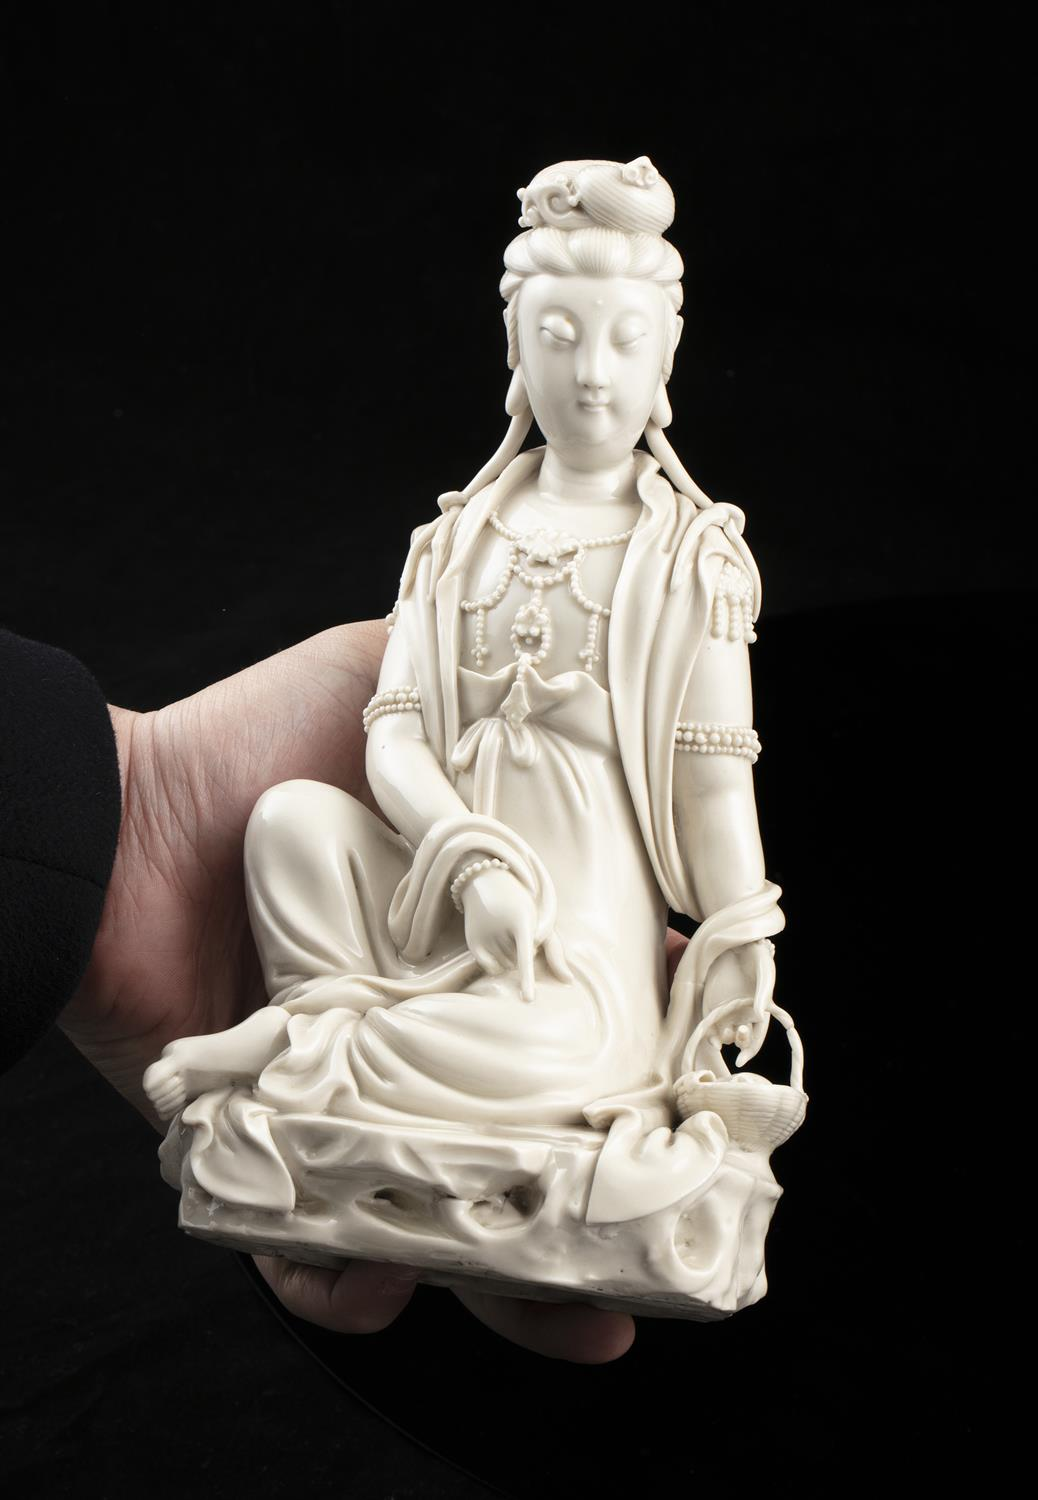 A LARGE DEHUA FIGURE OF A SEATED GUANYIN IMPRESSED WITH A HE CHAOZONG 何朝宗 CALABASH SHAPED SEAL - Image 45 of 48